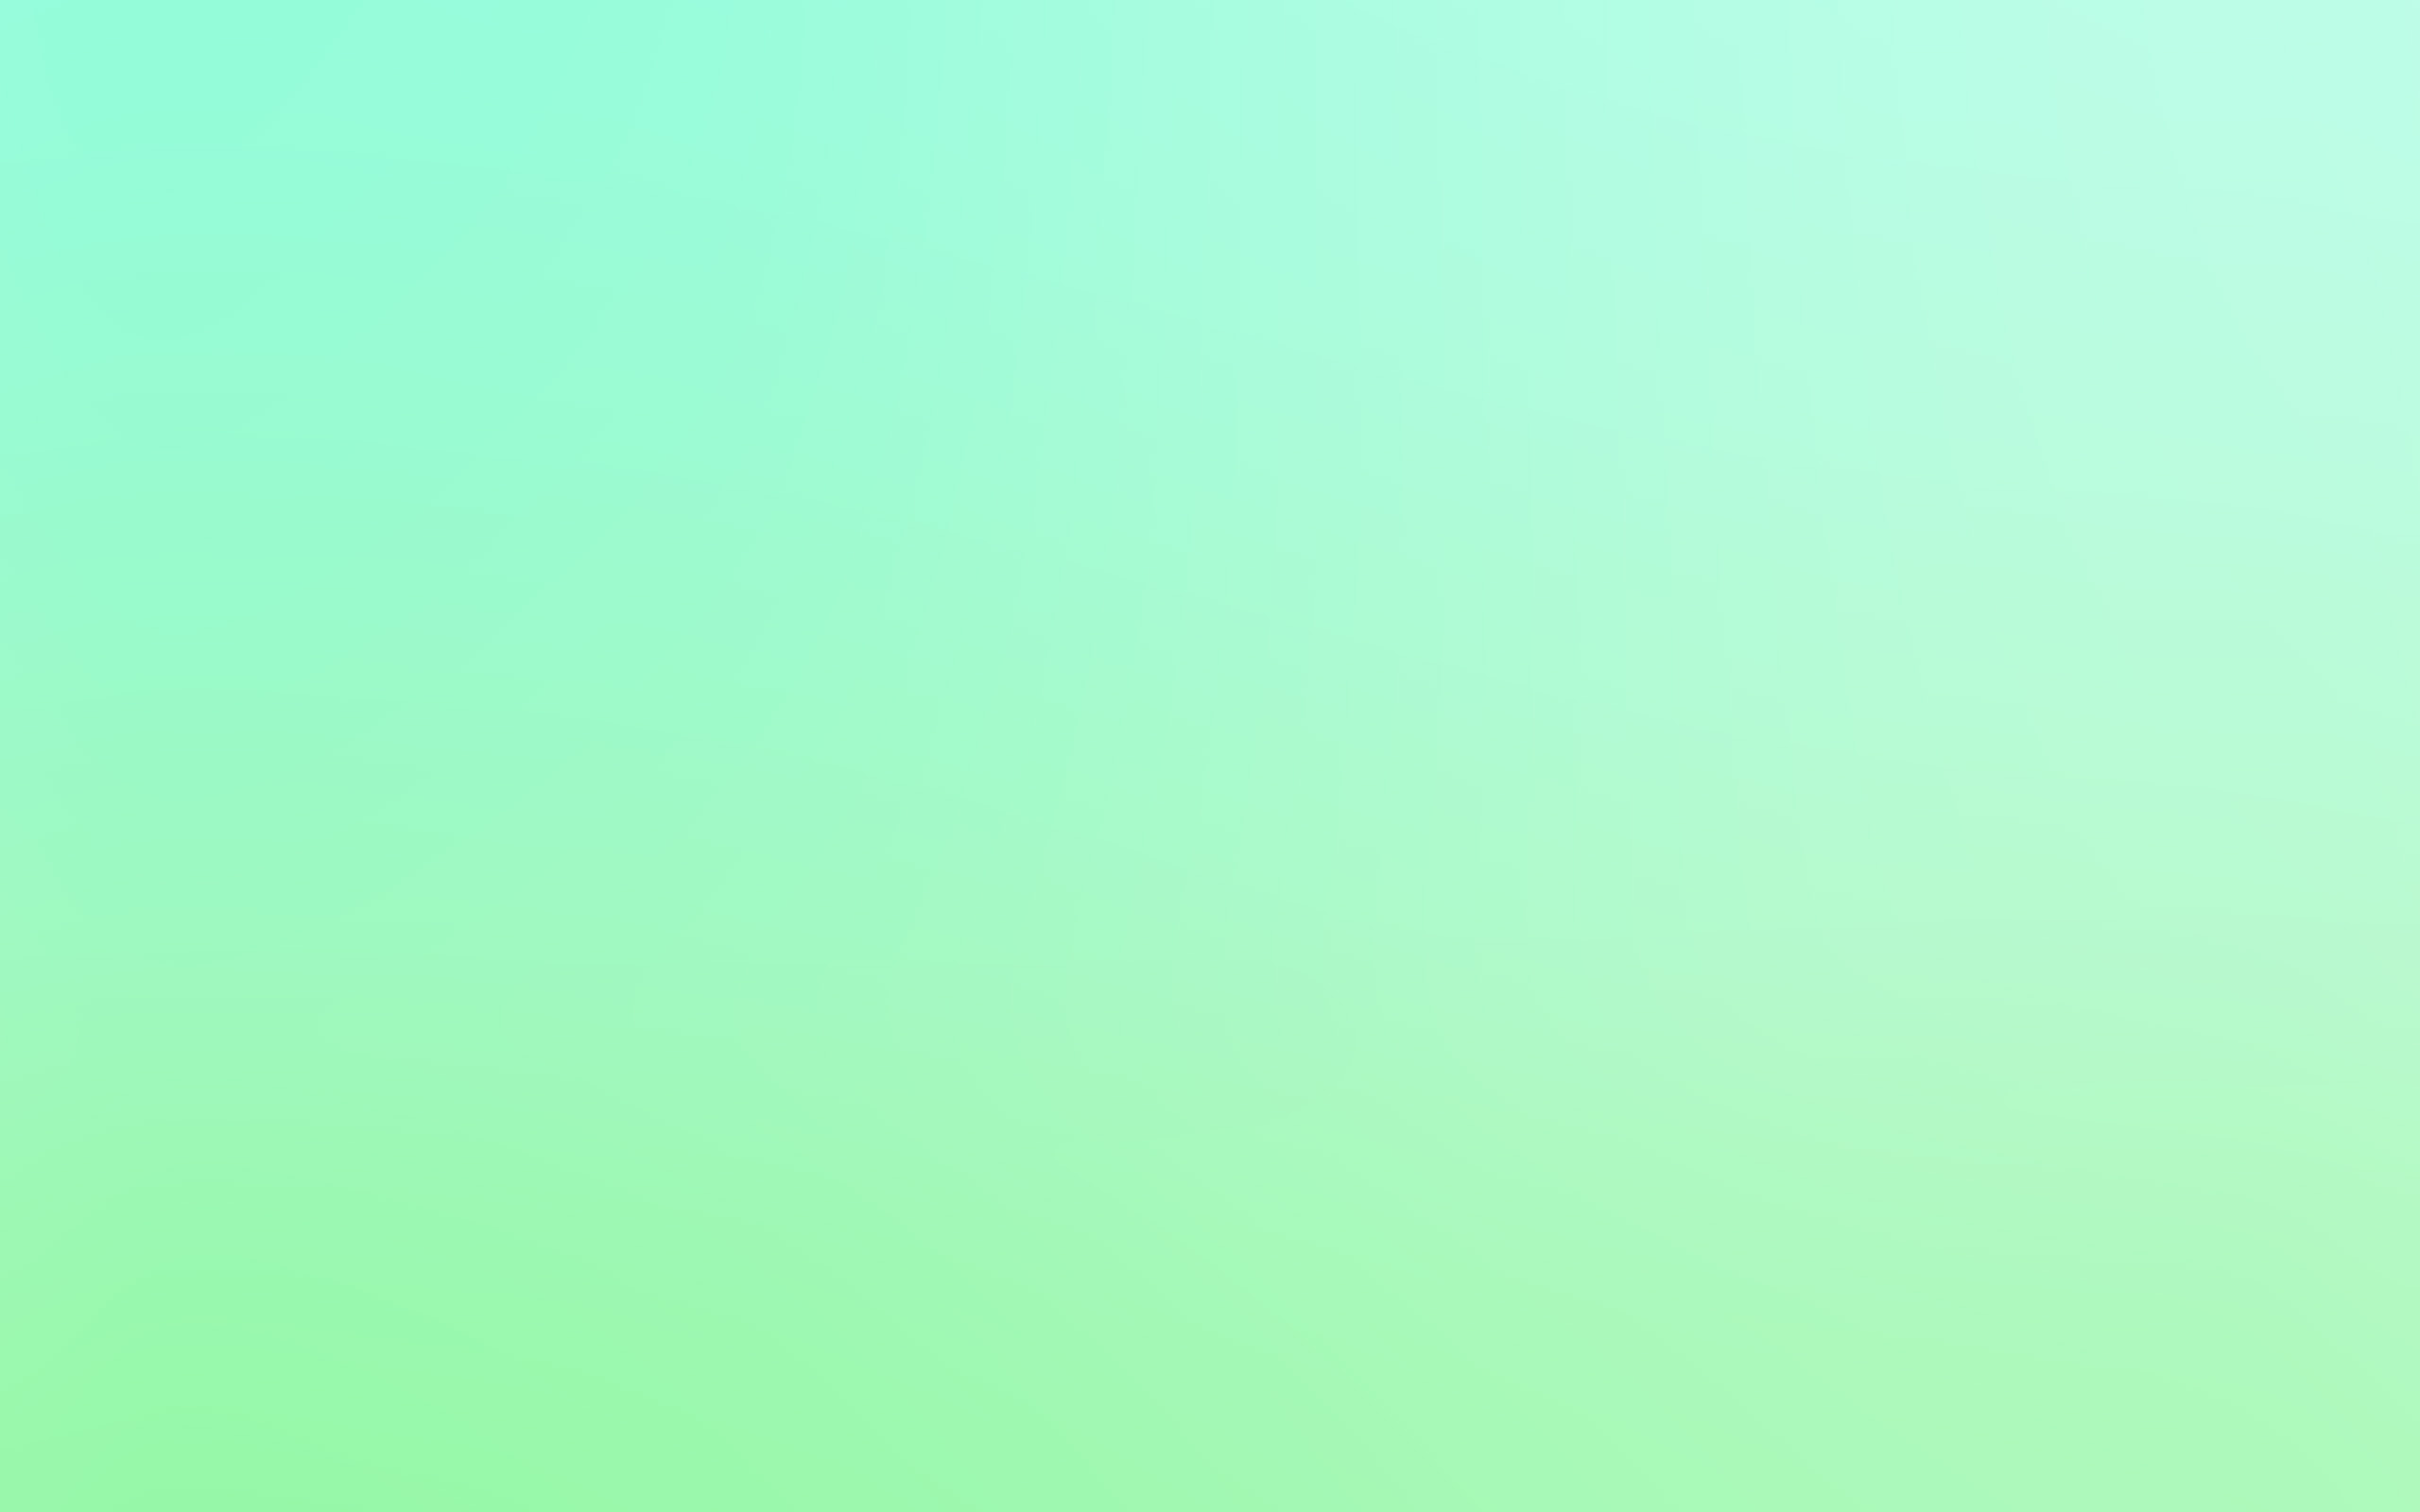 Cute Pastel Wallpaper For Iphone Sm59 Cool Pastel Blur Gradation Mint Green Wallpaper